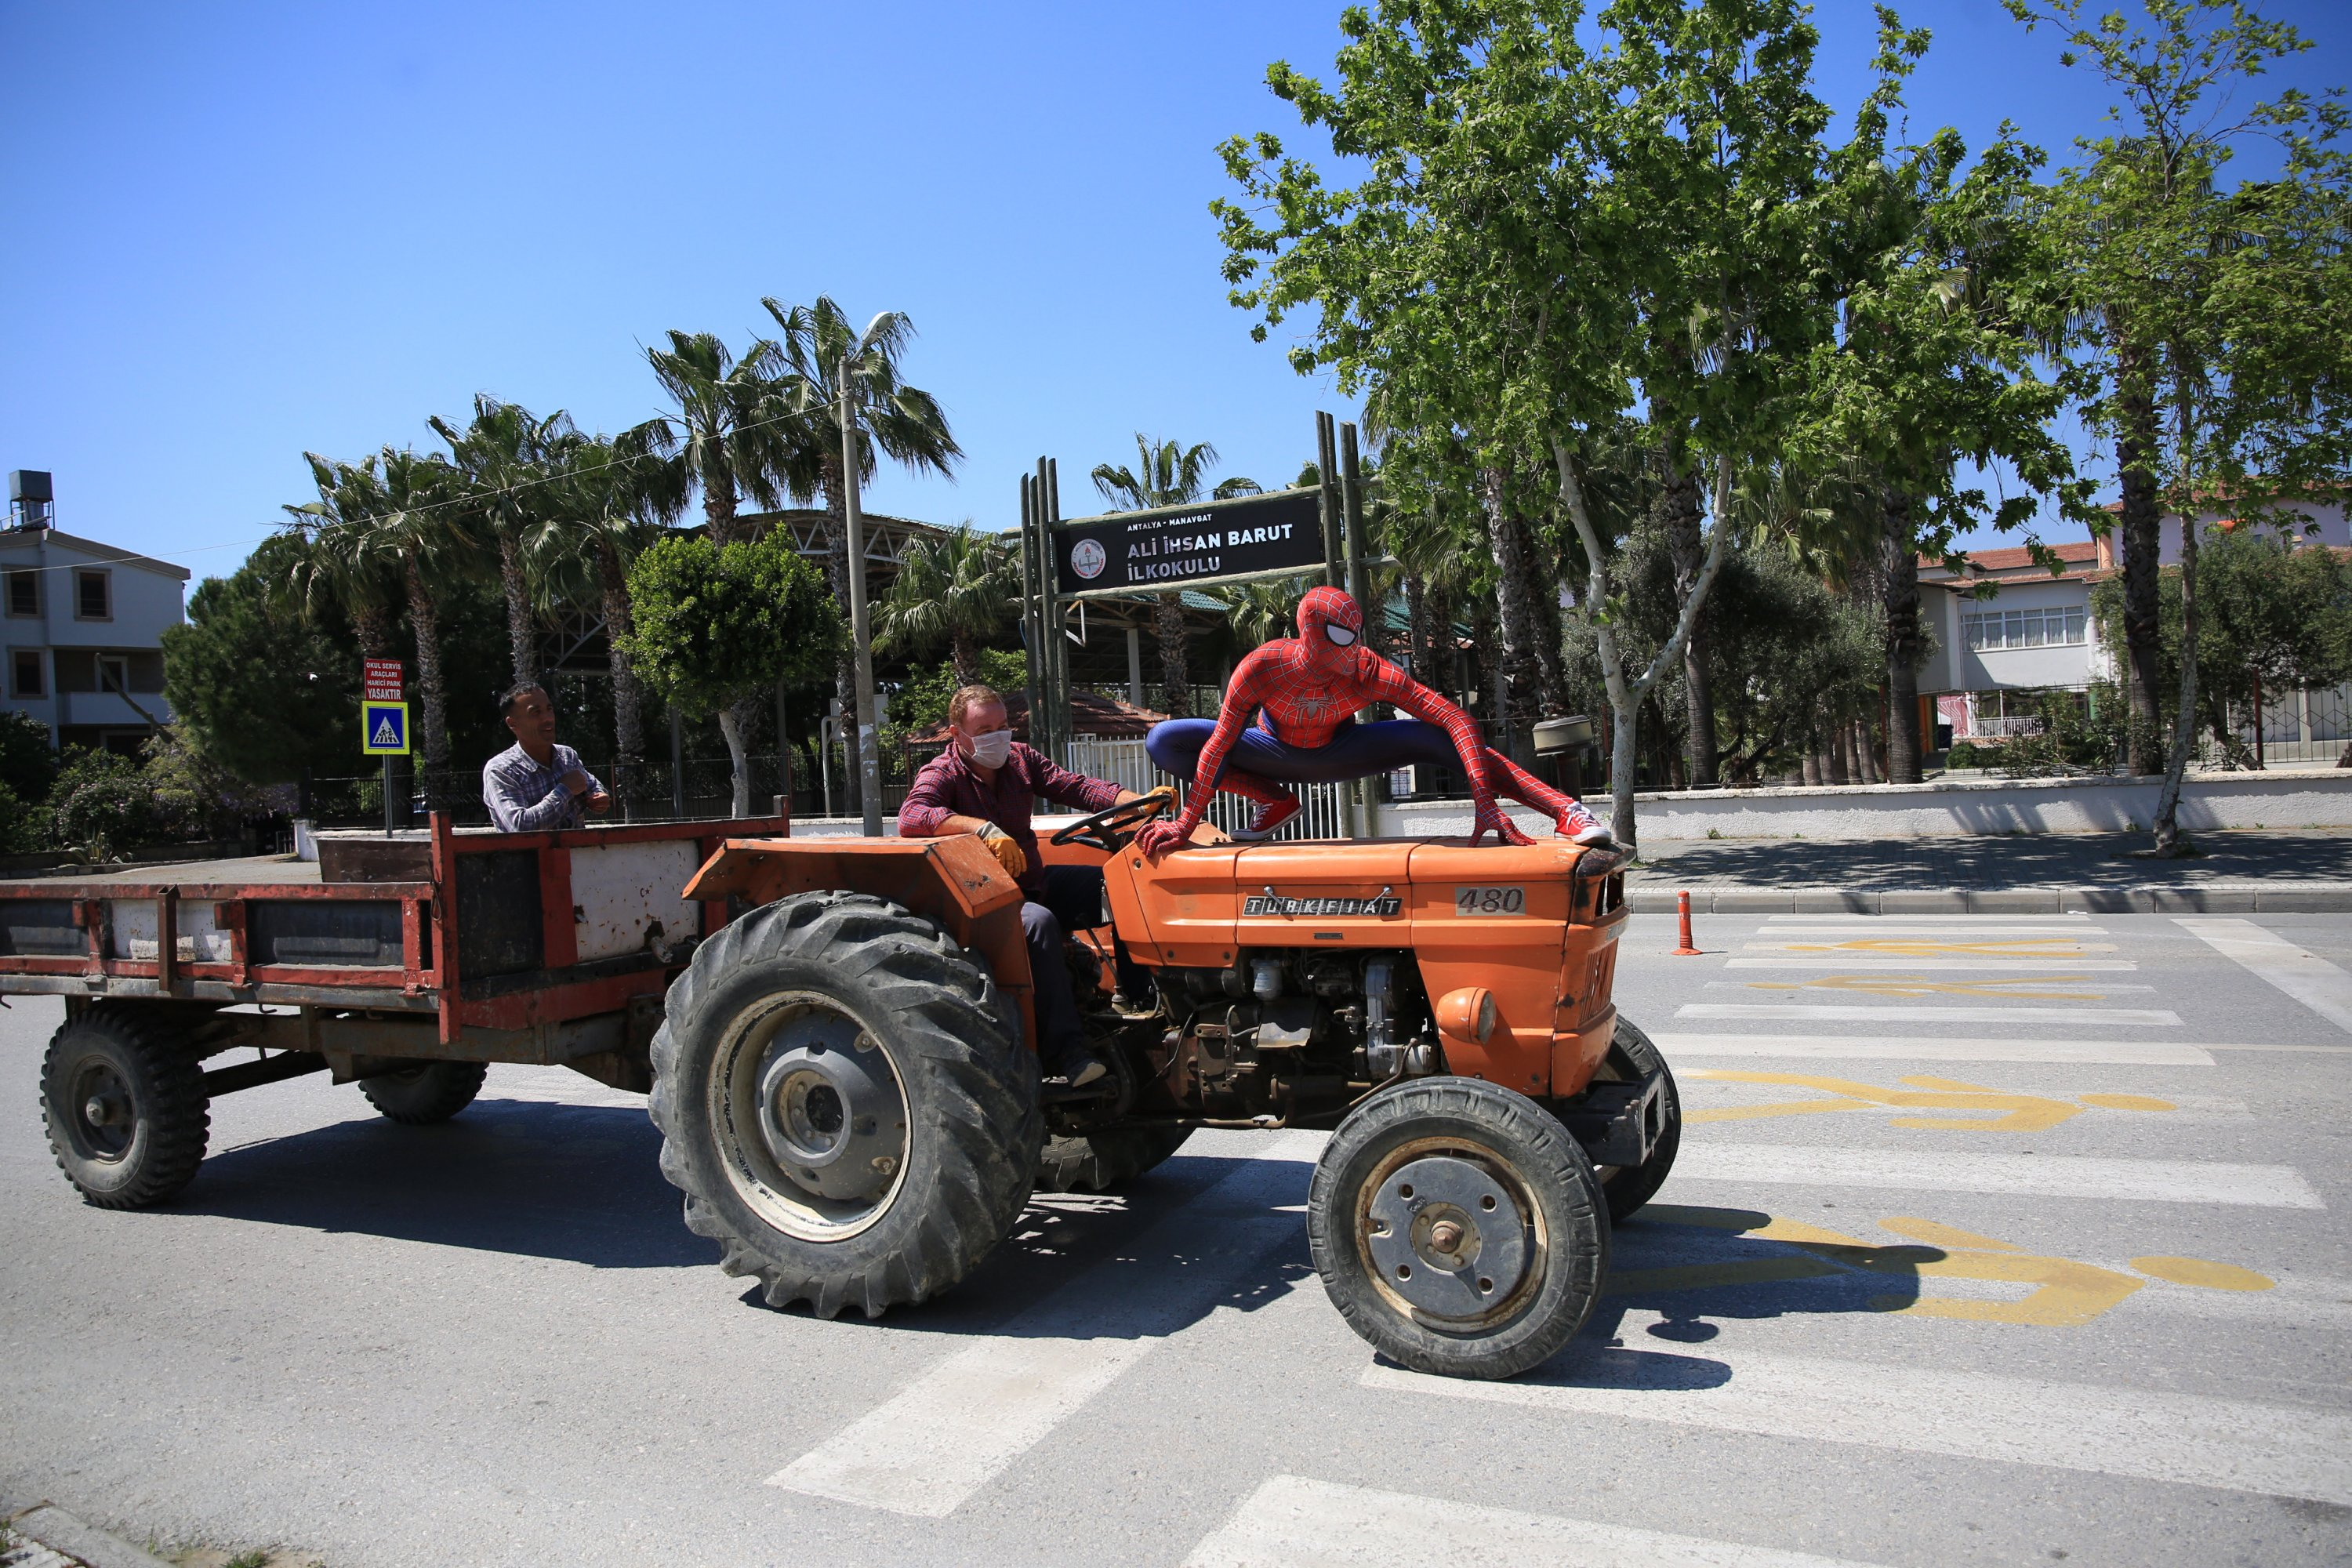 Burak Soylu, wearing the Spiderman costume, poses for a photo on top of a tractor in Antalya, Turkey, Tuesday, April 14, 2020. (AA Photo)